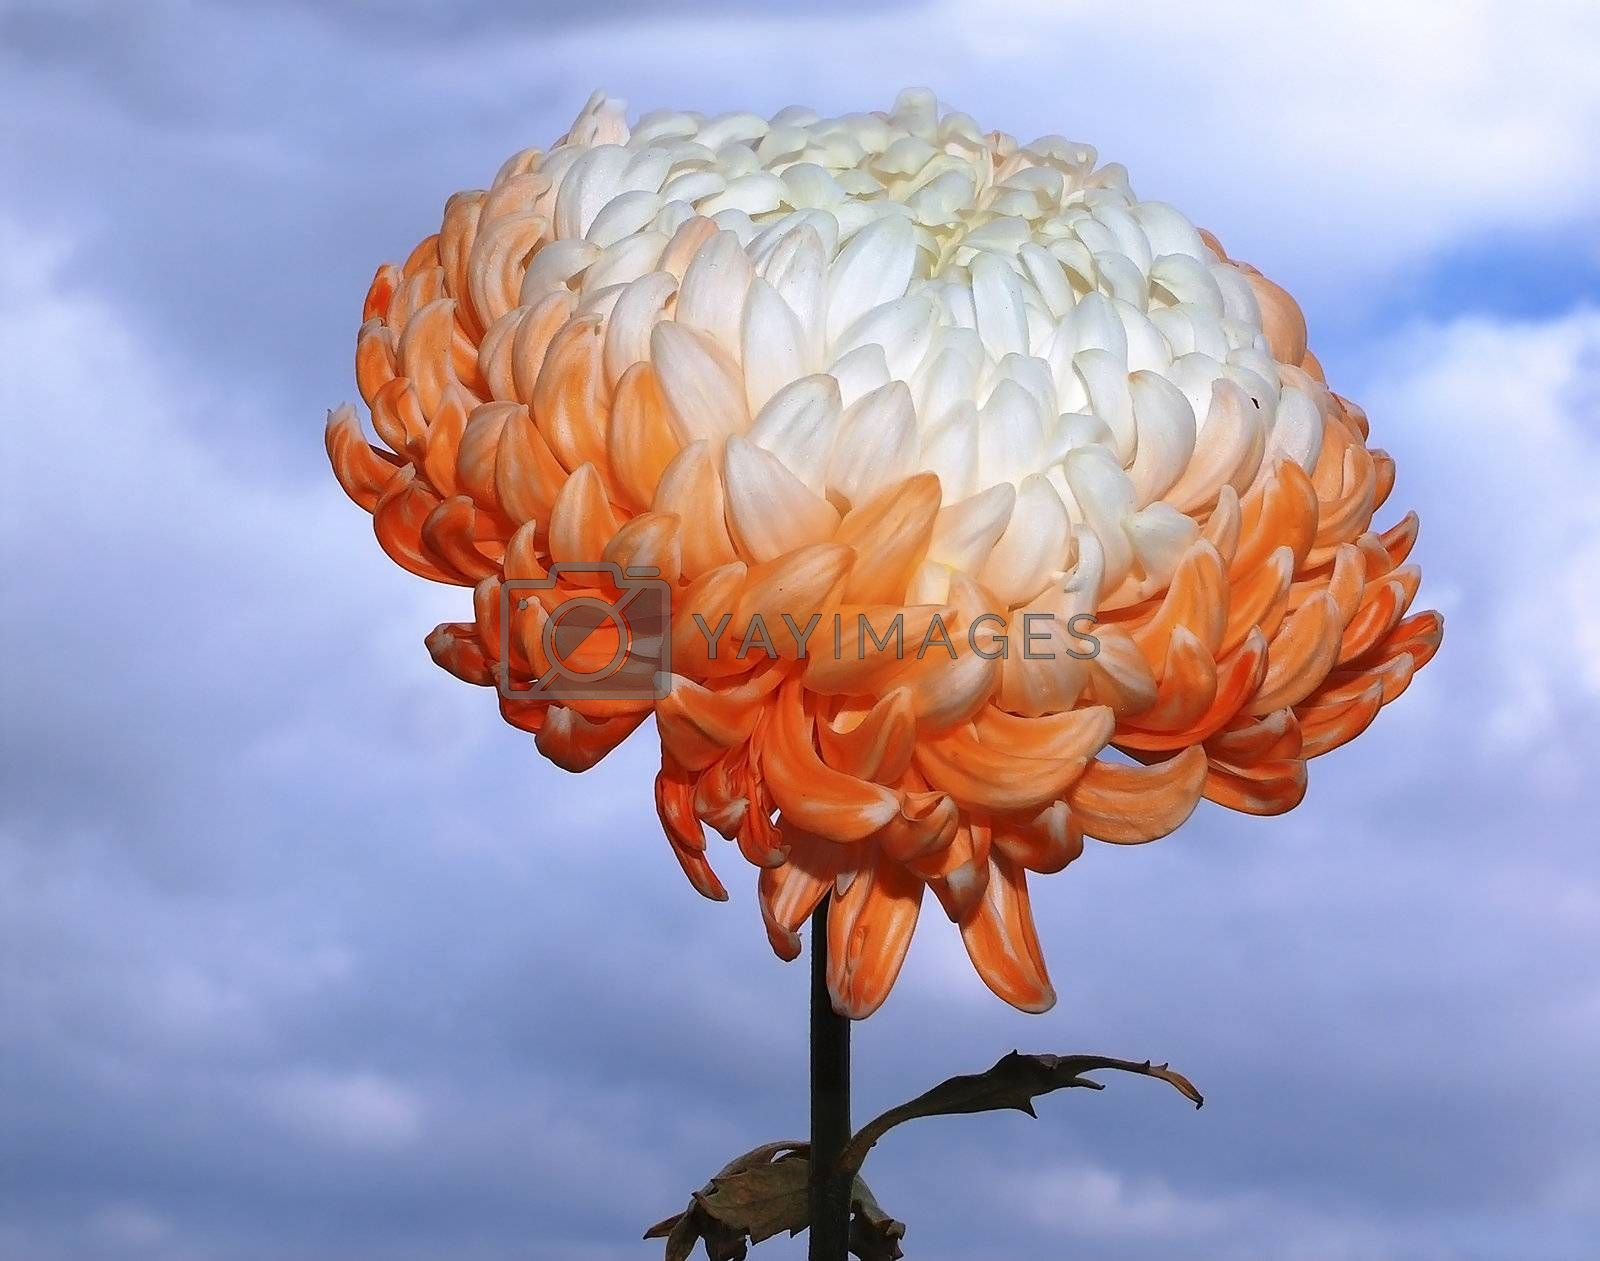 fresh-cut pink and white chrysanthemum on blue sky background